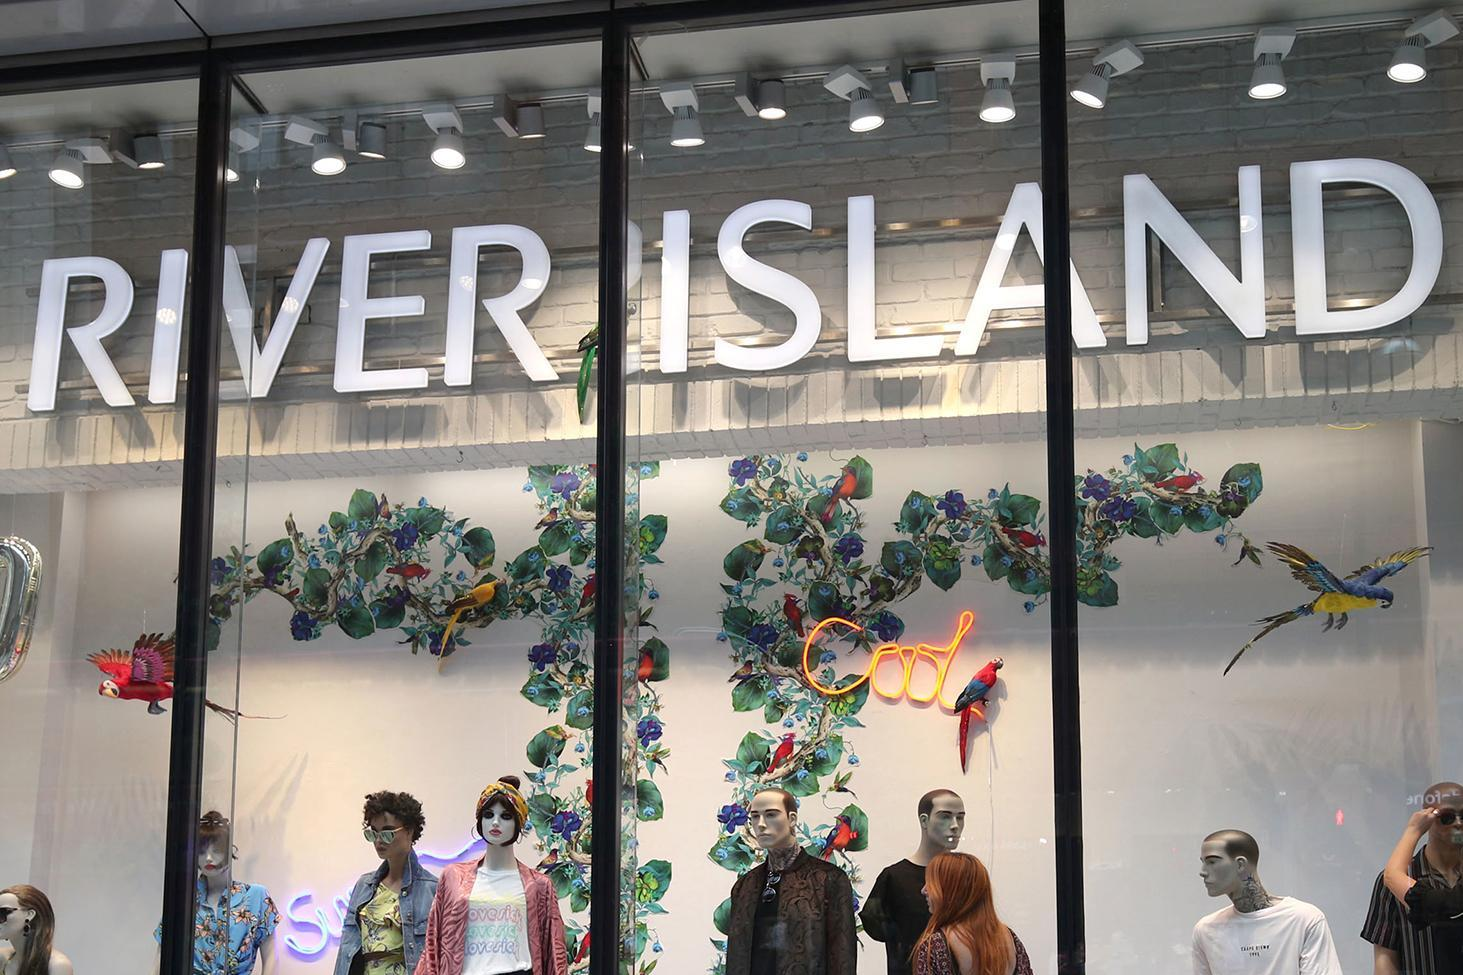 River Island recalls clothes over fears they contain harmful levels of dangerous chemicals